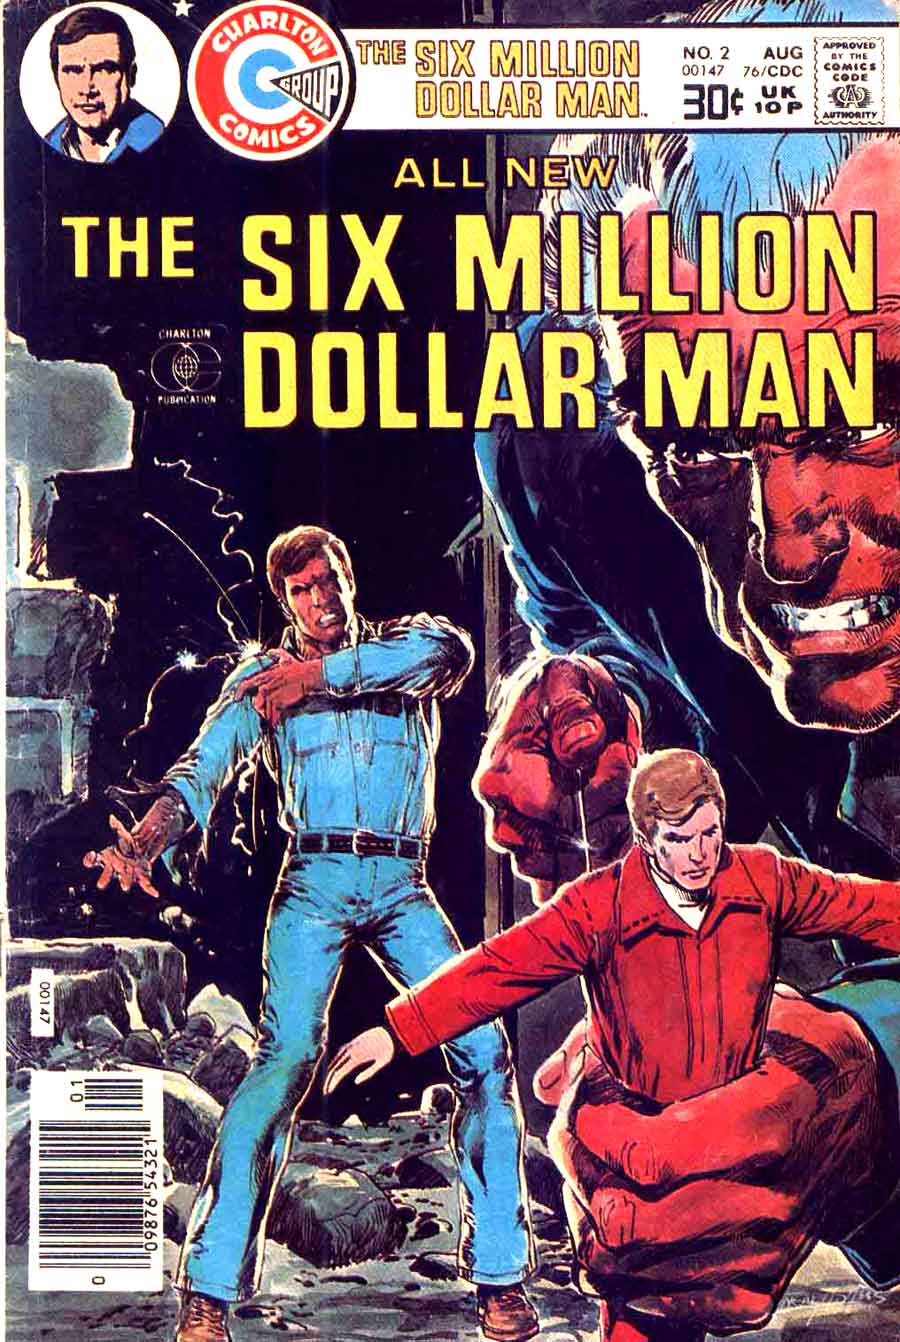 Six Million Dollar Man v1 #2 charlton 1970s bronze age comic book cover art by Neal Adams